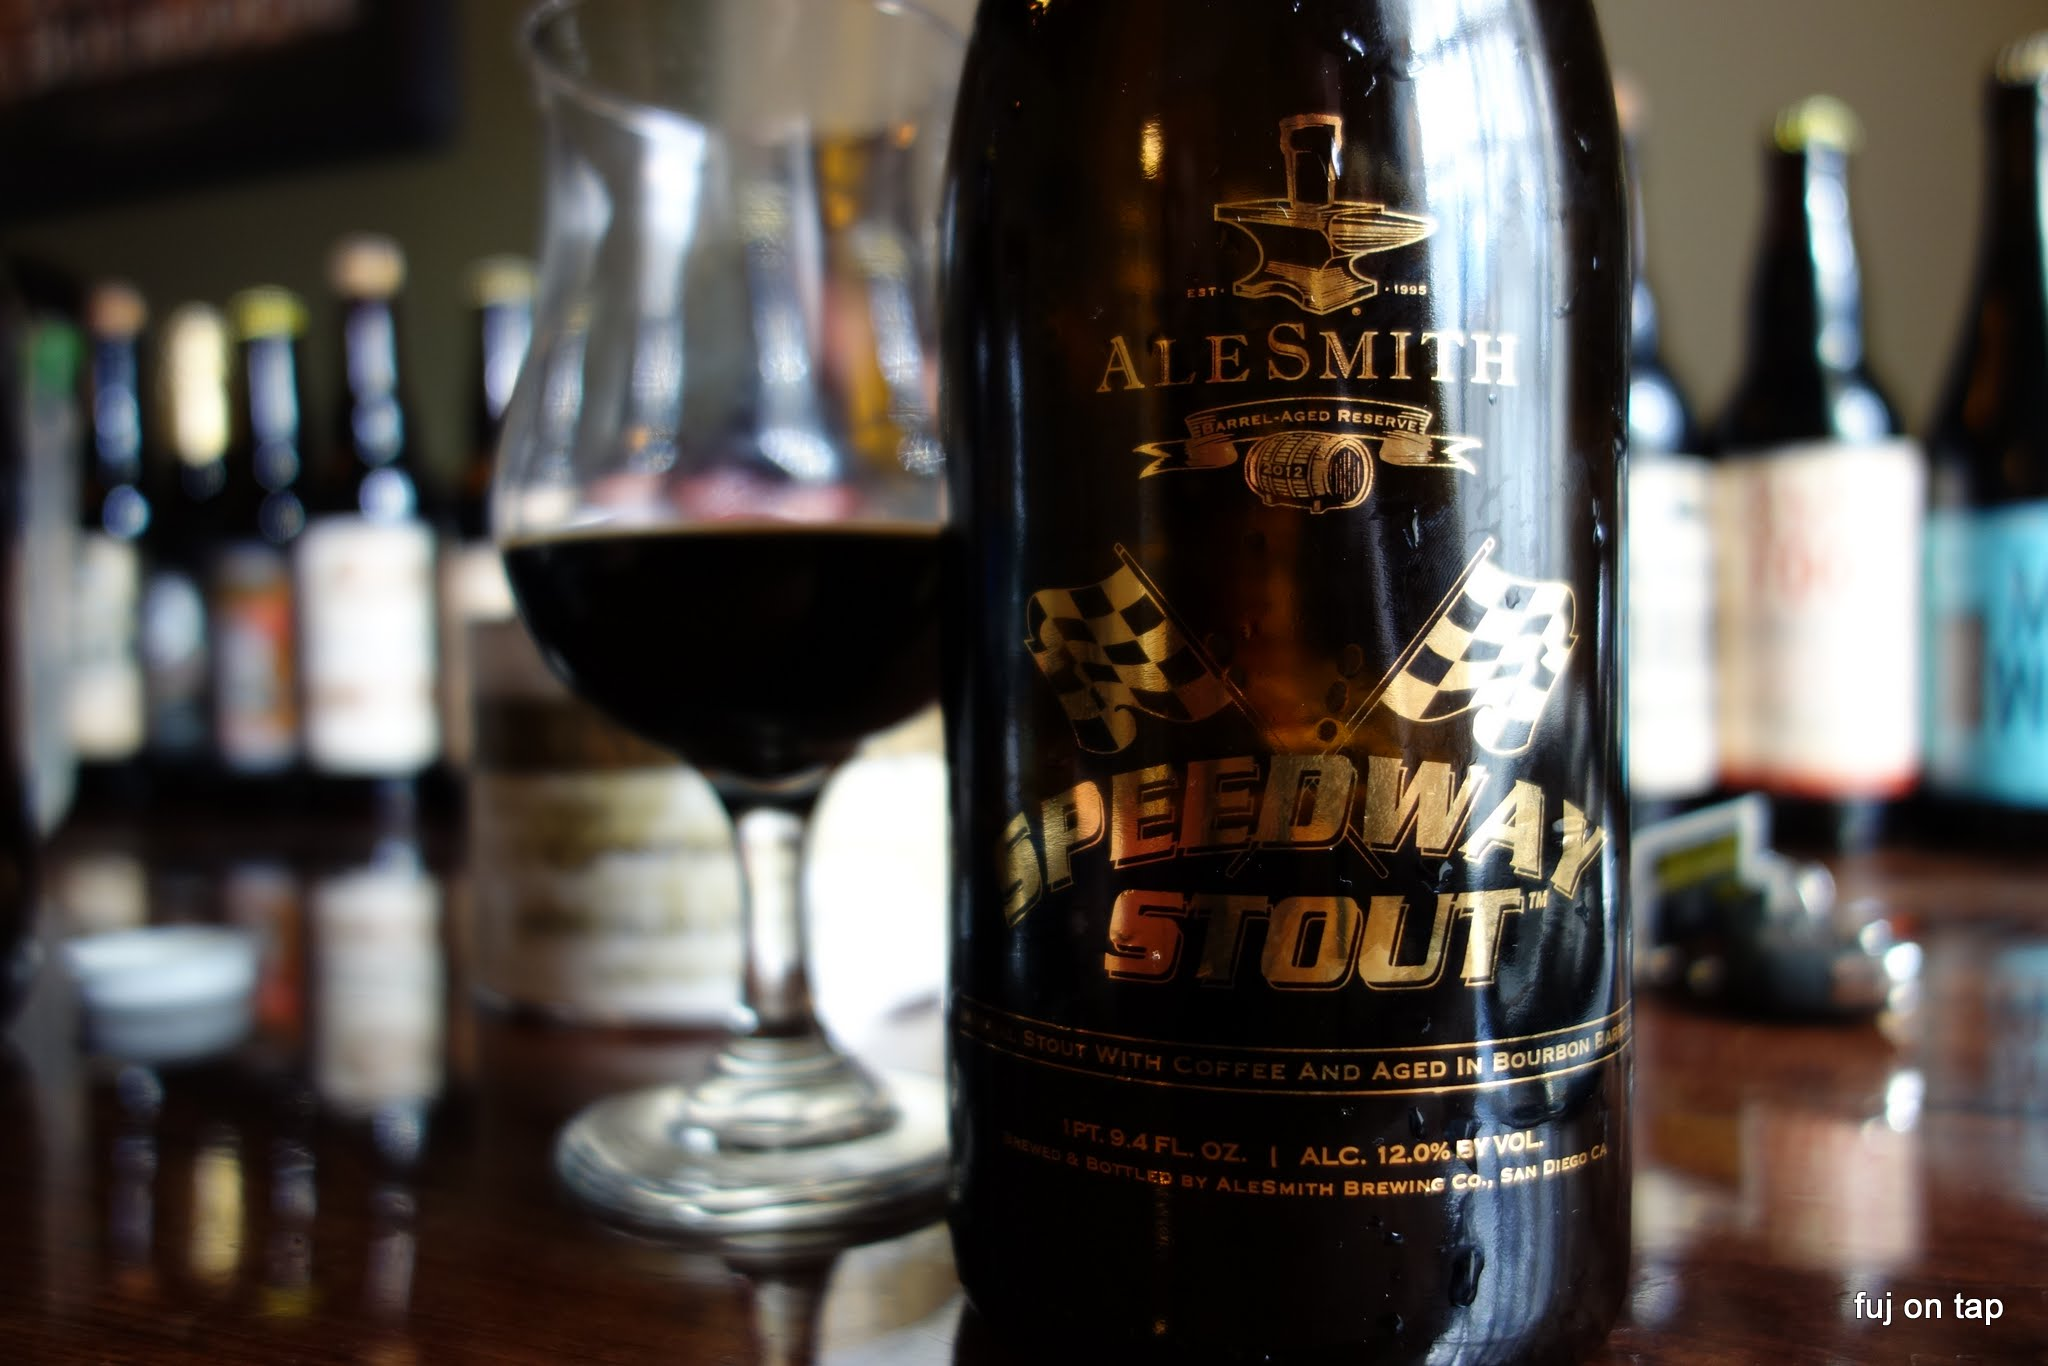 Alesmith Barrel Aged Speedway Stout